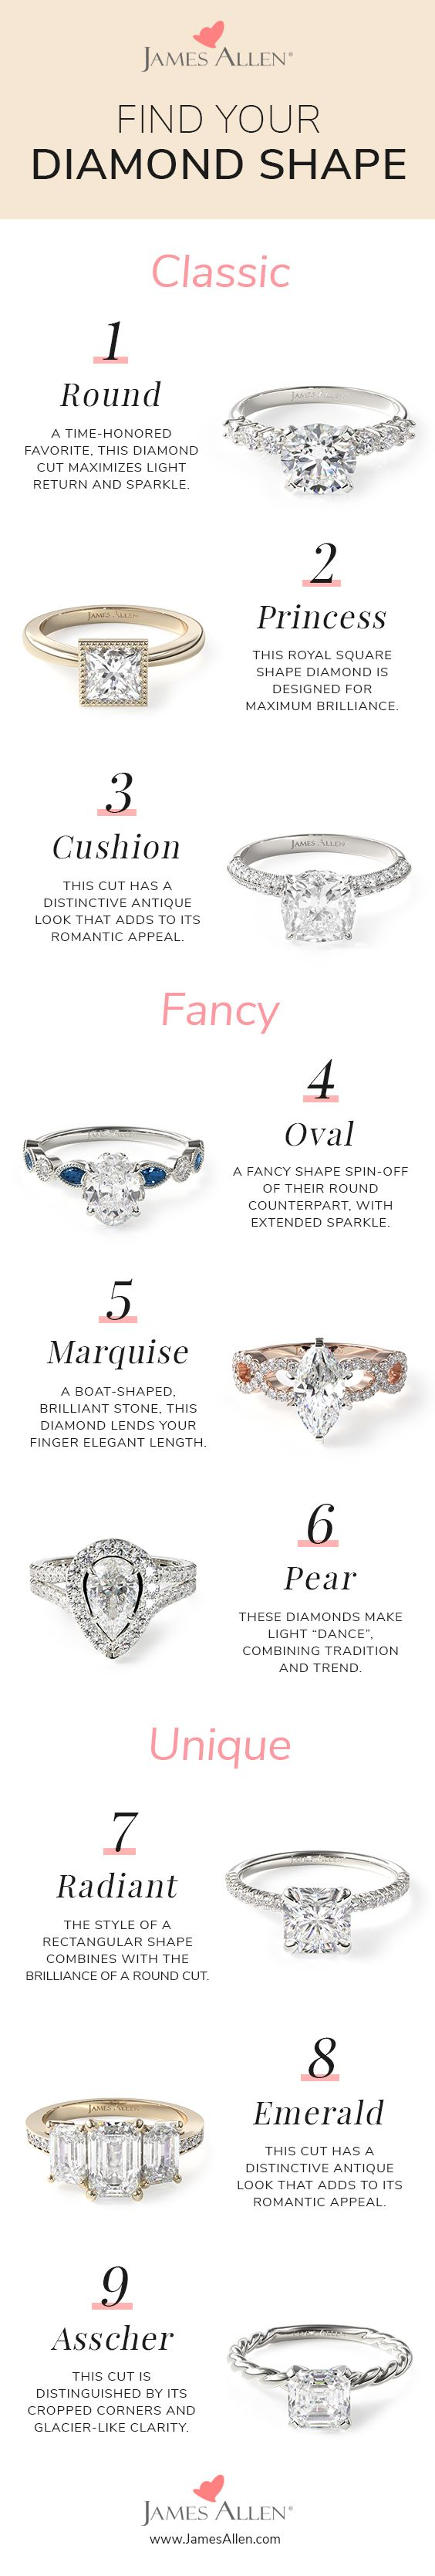 Diamond engagement rings - how to find your diamond shape